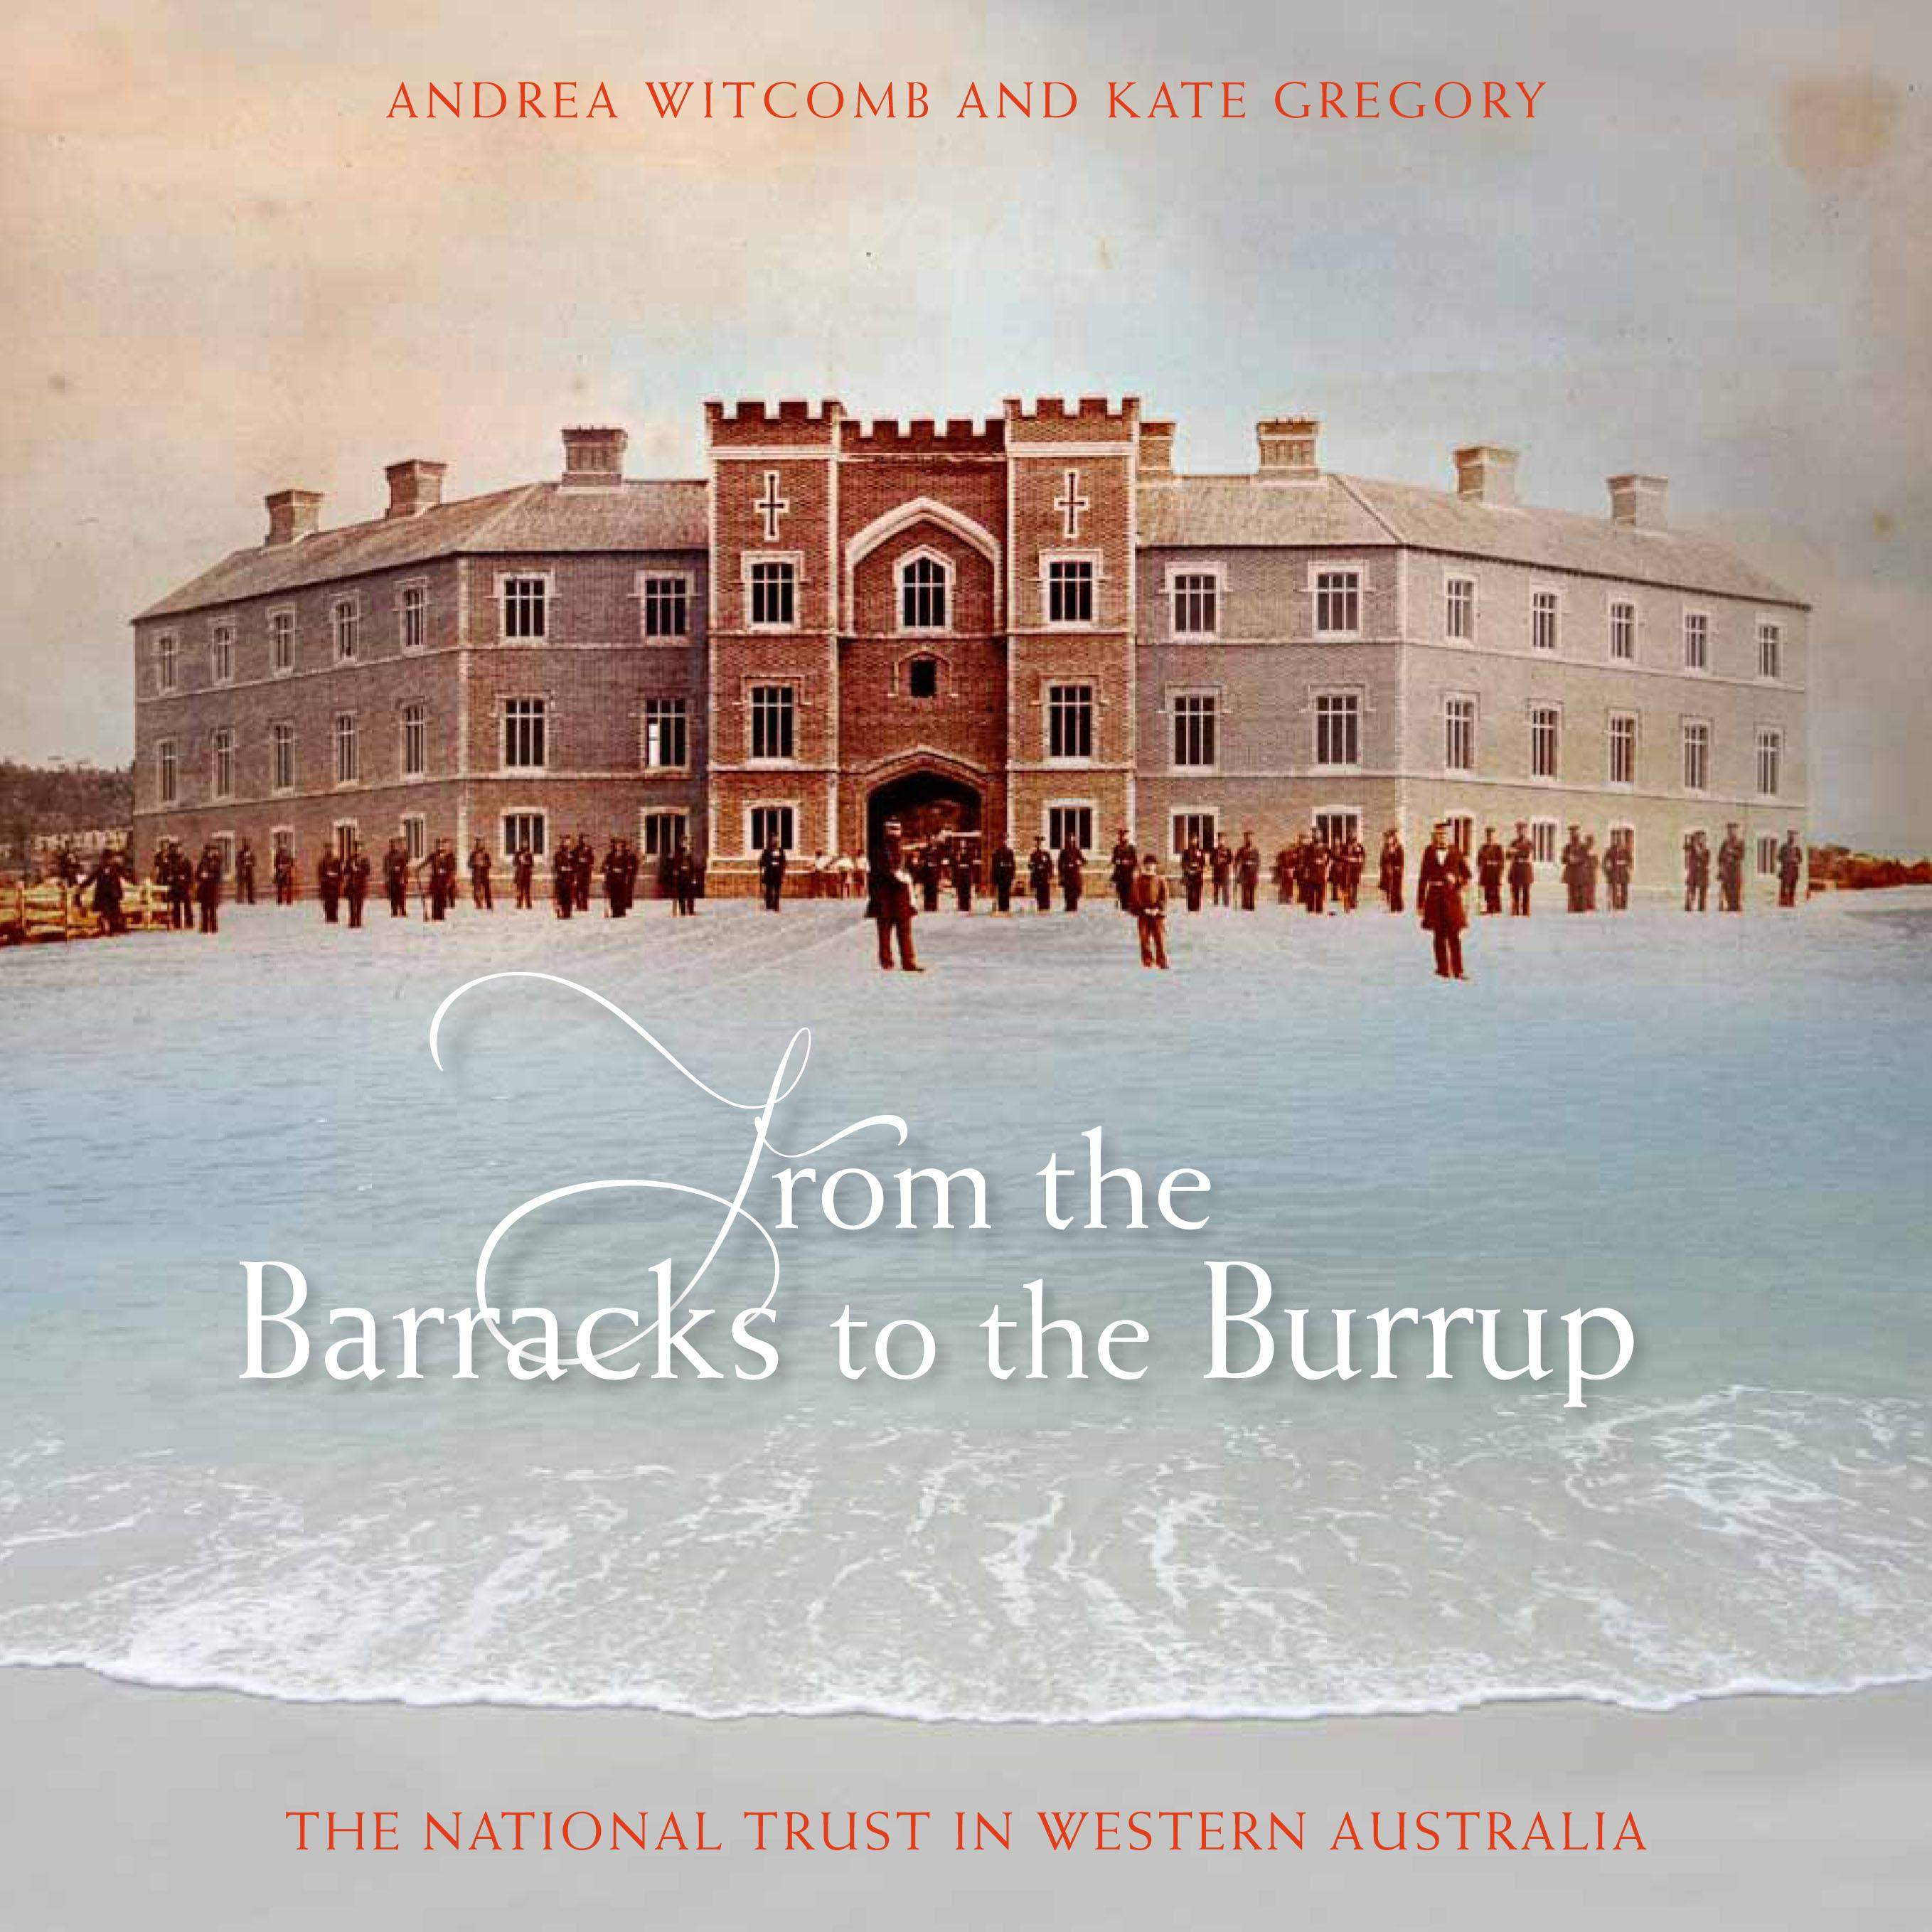 From the Barracks to the Burrup: The National Trust in Western Australia